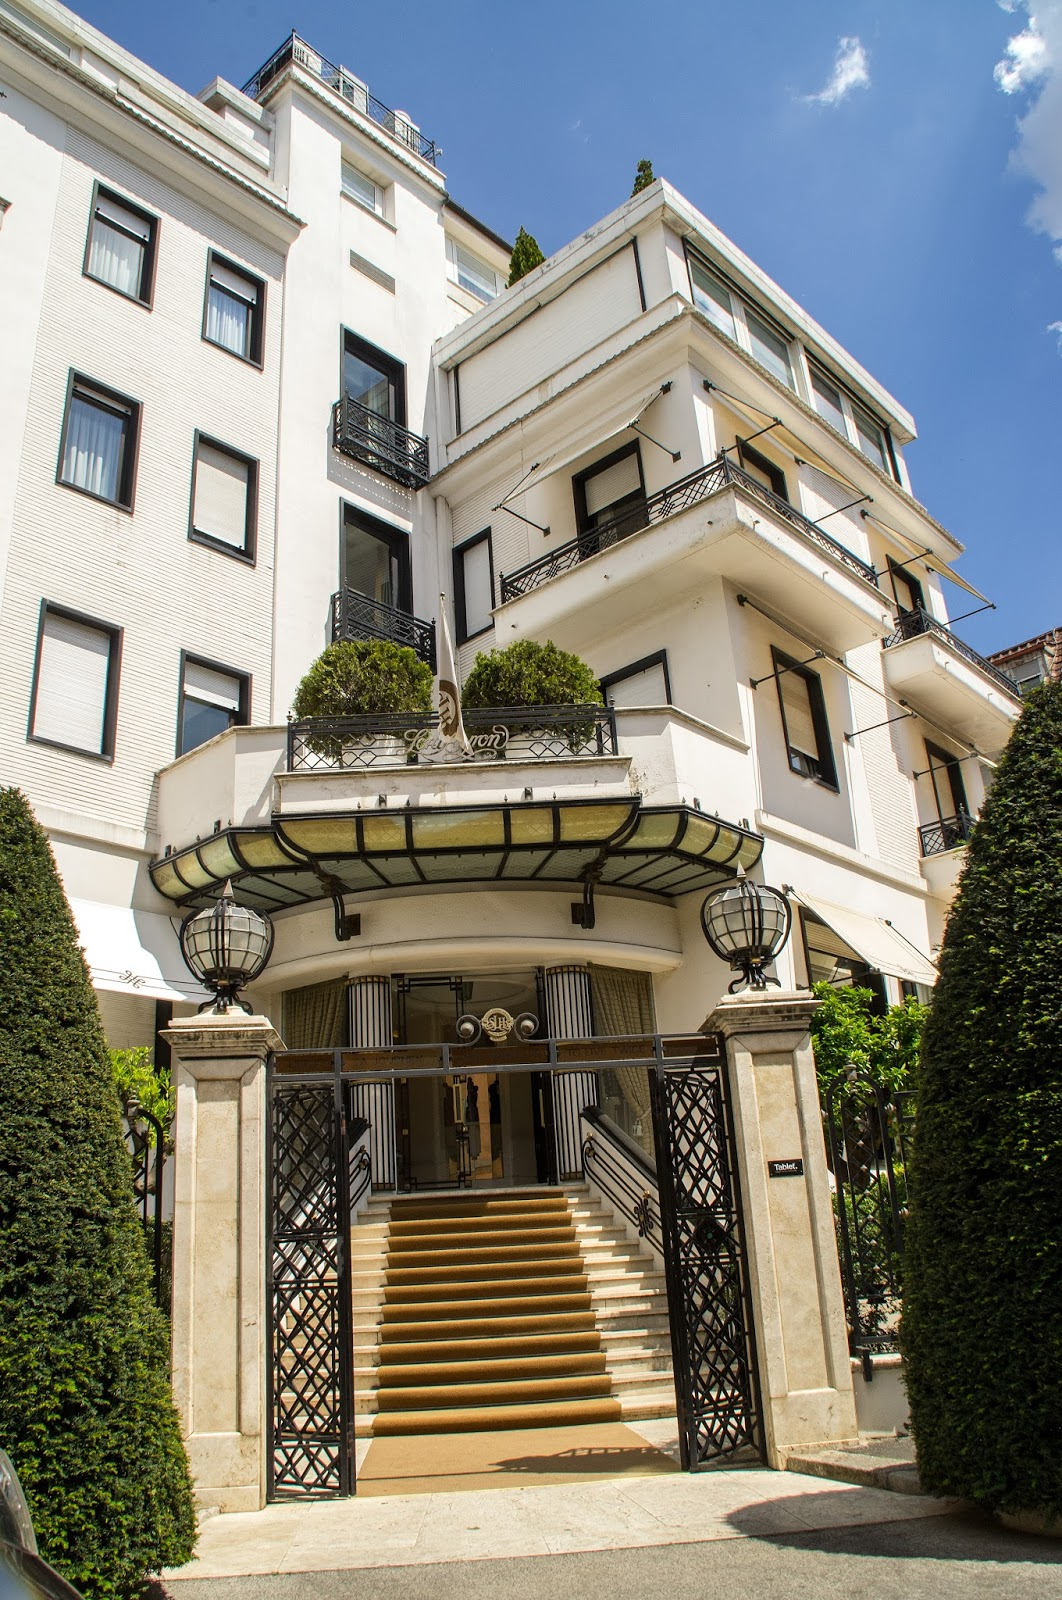 An elegant stay at hotel lord byron rome the aussie for Small luxury hotels of the world list